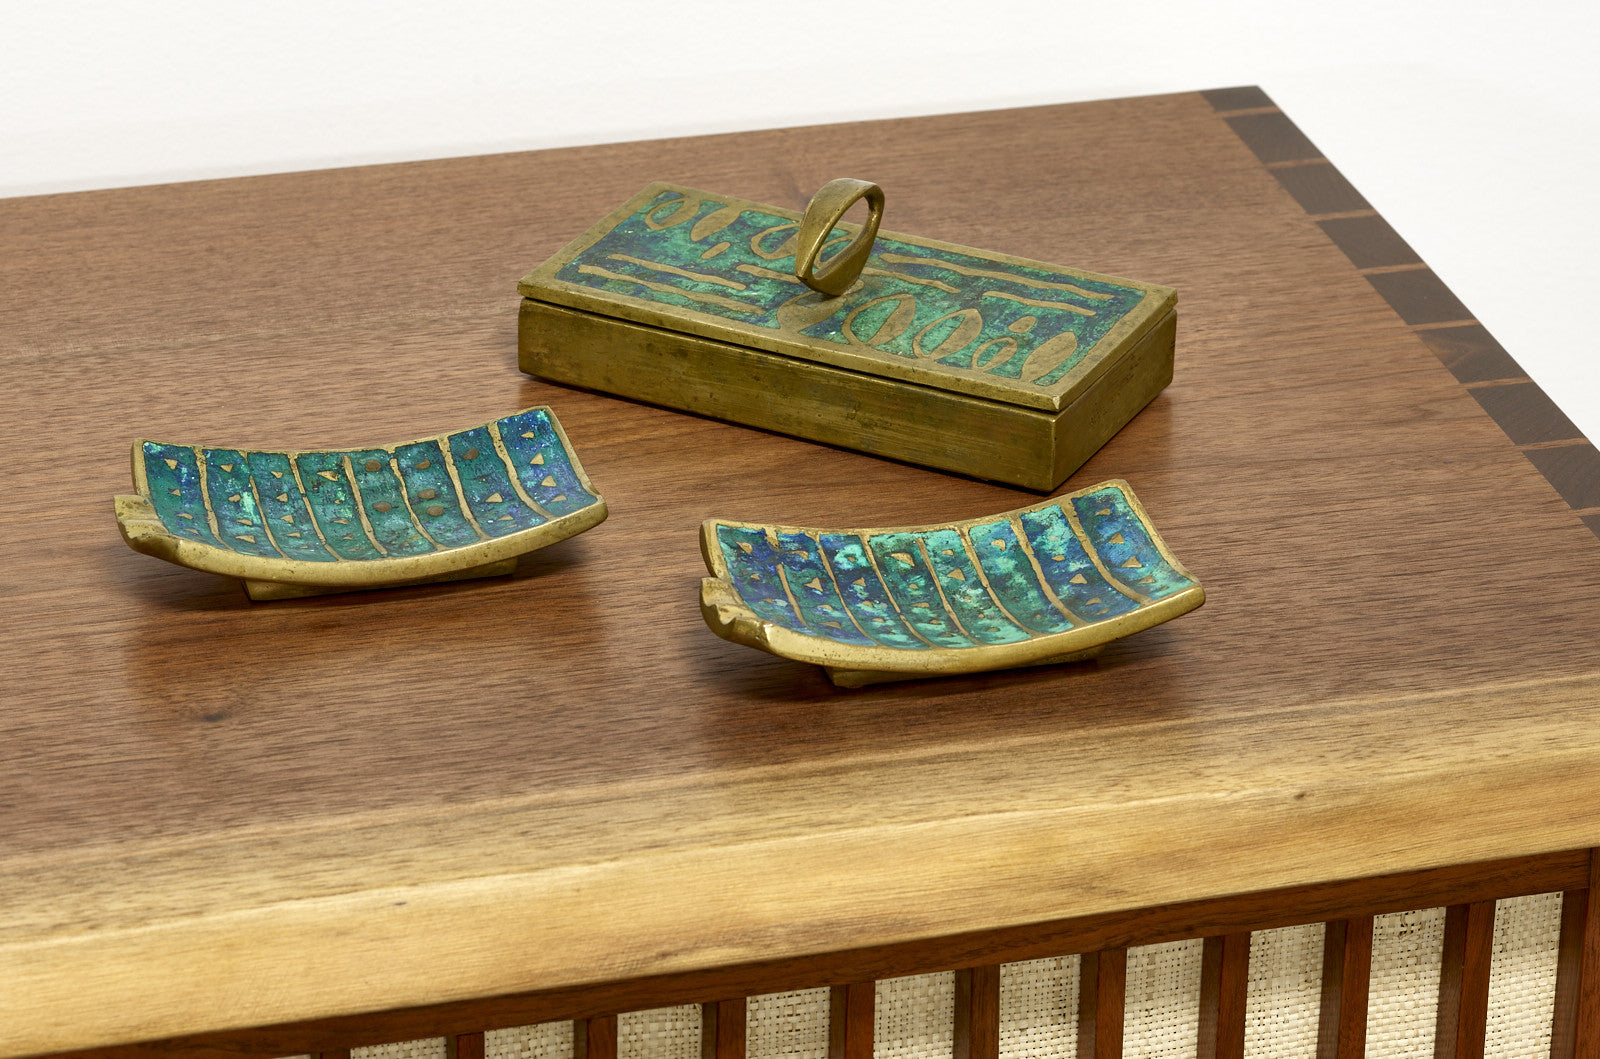 Pepe Mendoza Brass and Ceramic Box, 1950s - The Exchange Int